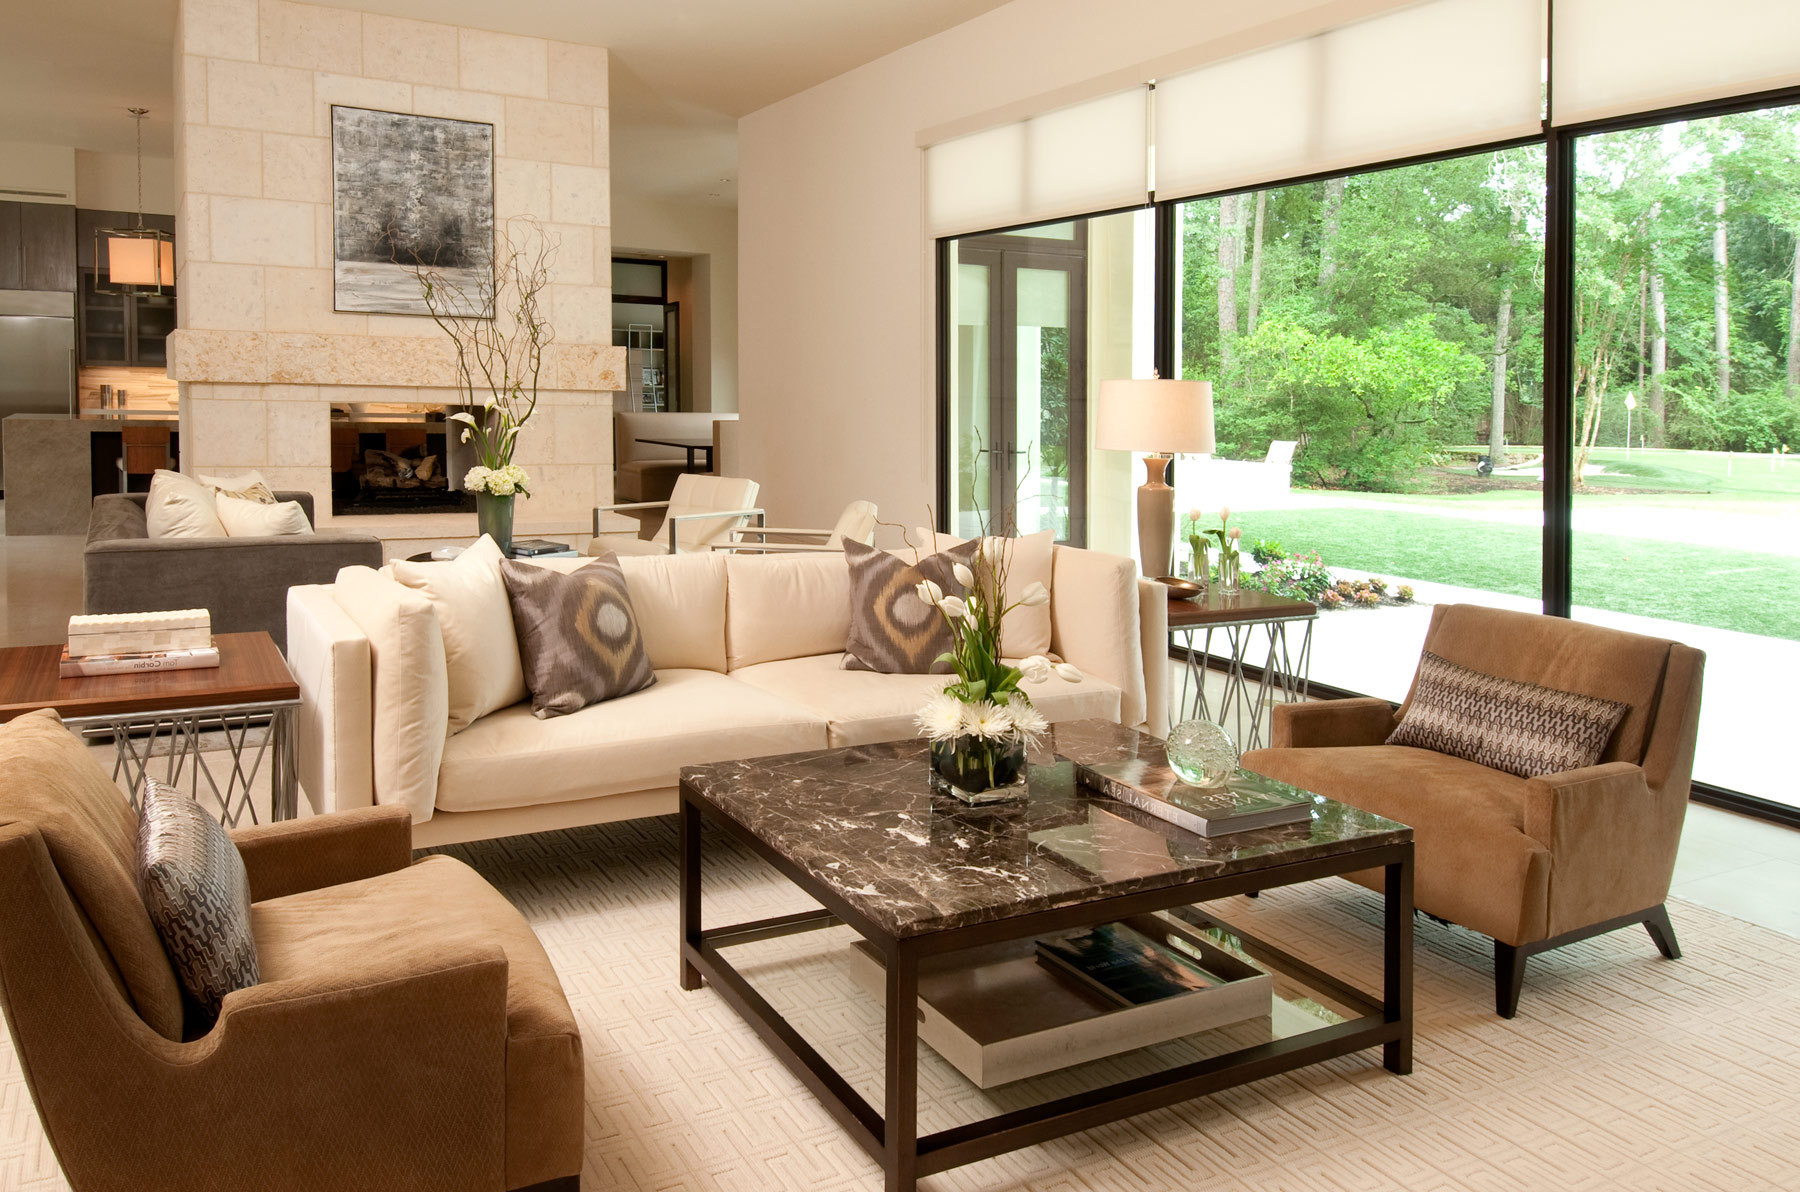 Aqua Living Room Decorating Ideas Gorgeous Lounge Wohnzimmer Cozy And Comfortable American Living Room Interior 8001